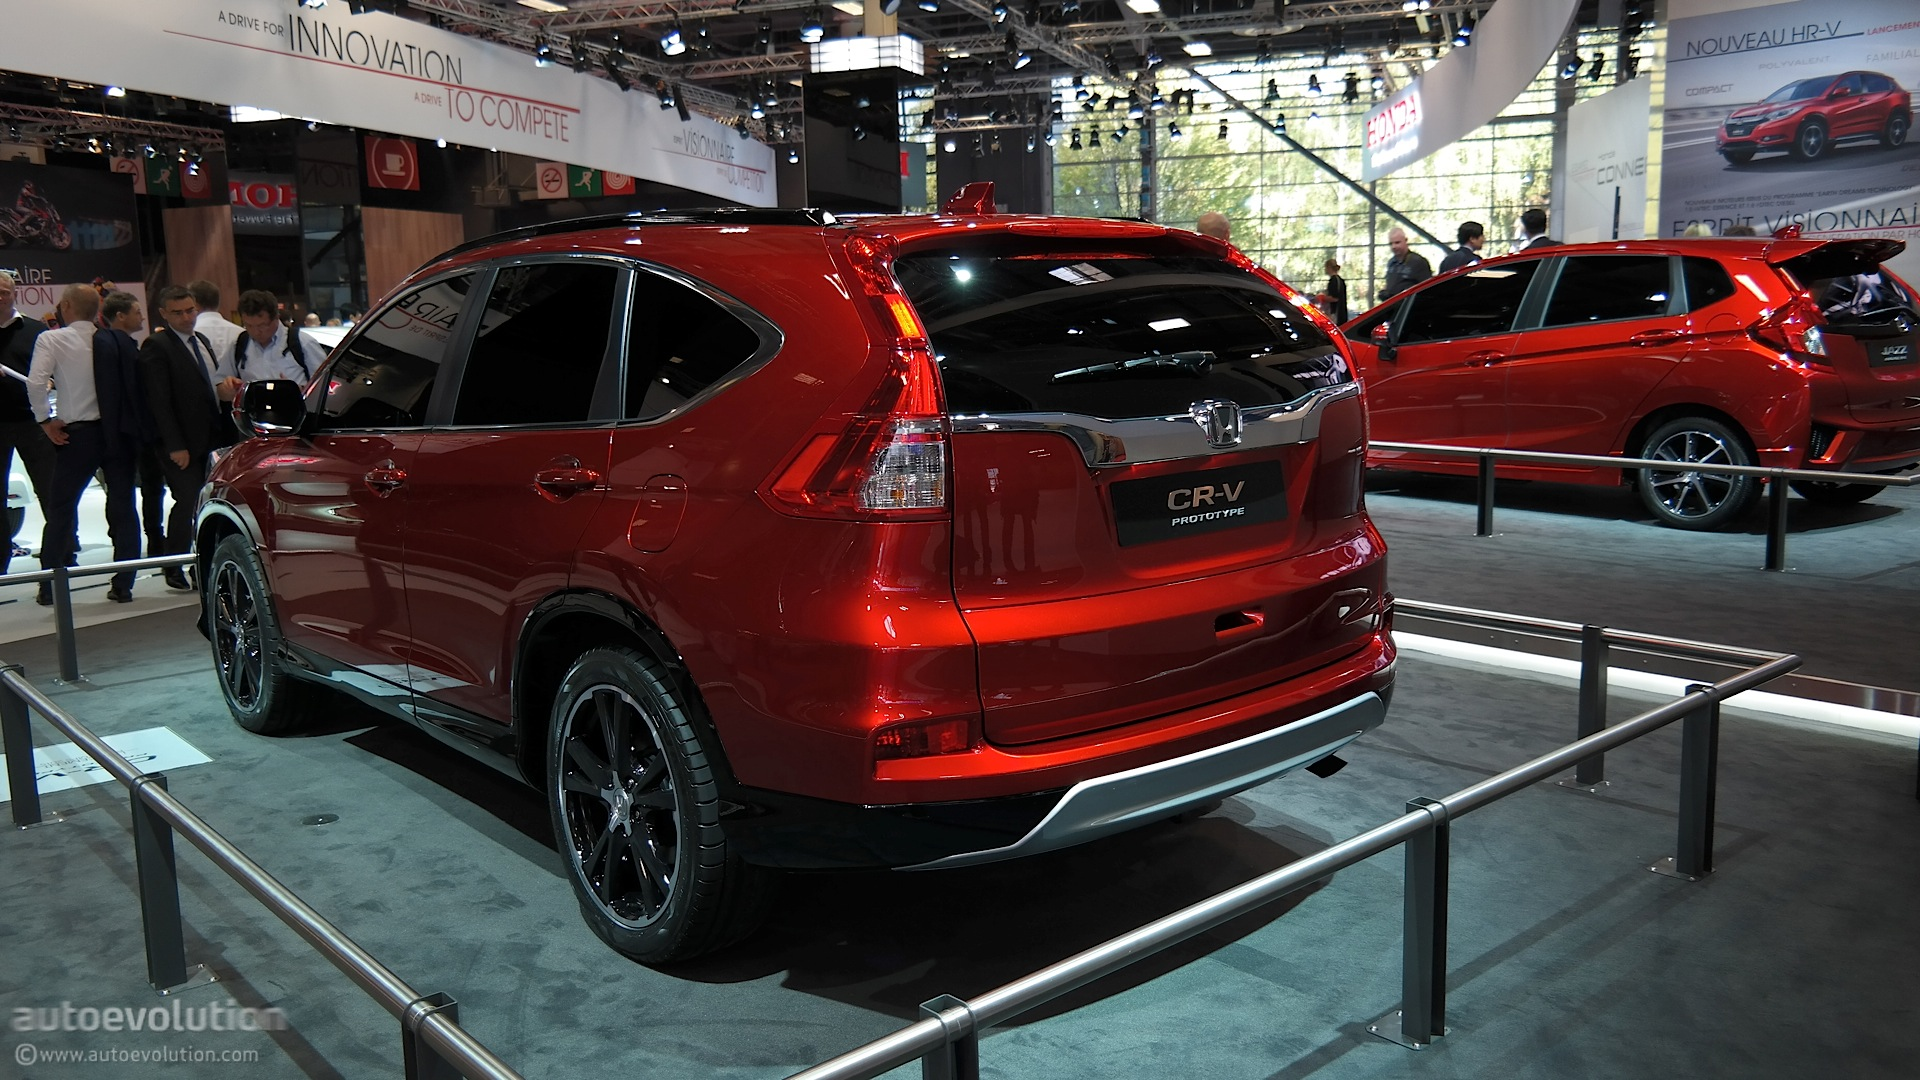 When Does 2015 Honda Cr V Come Out | Specs, Price, Release Date and